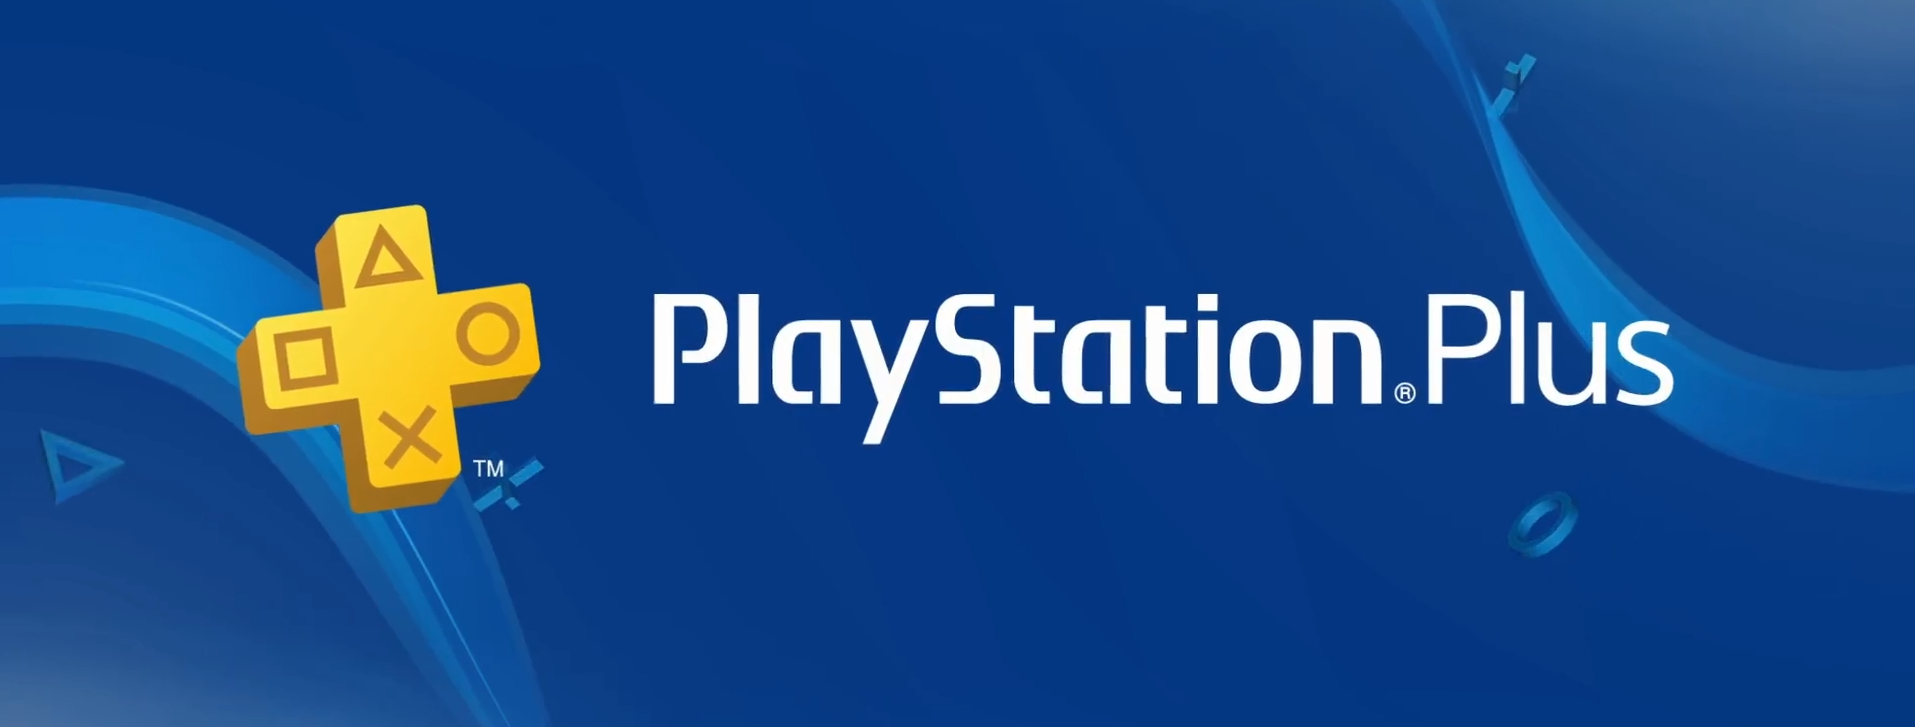 PSN_PLUS_LOGO